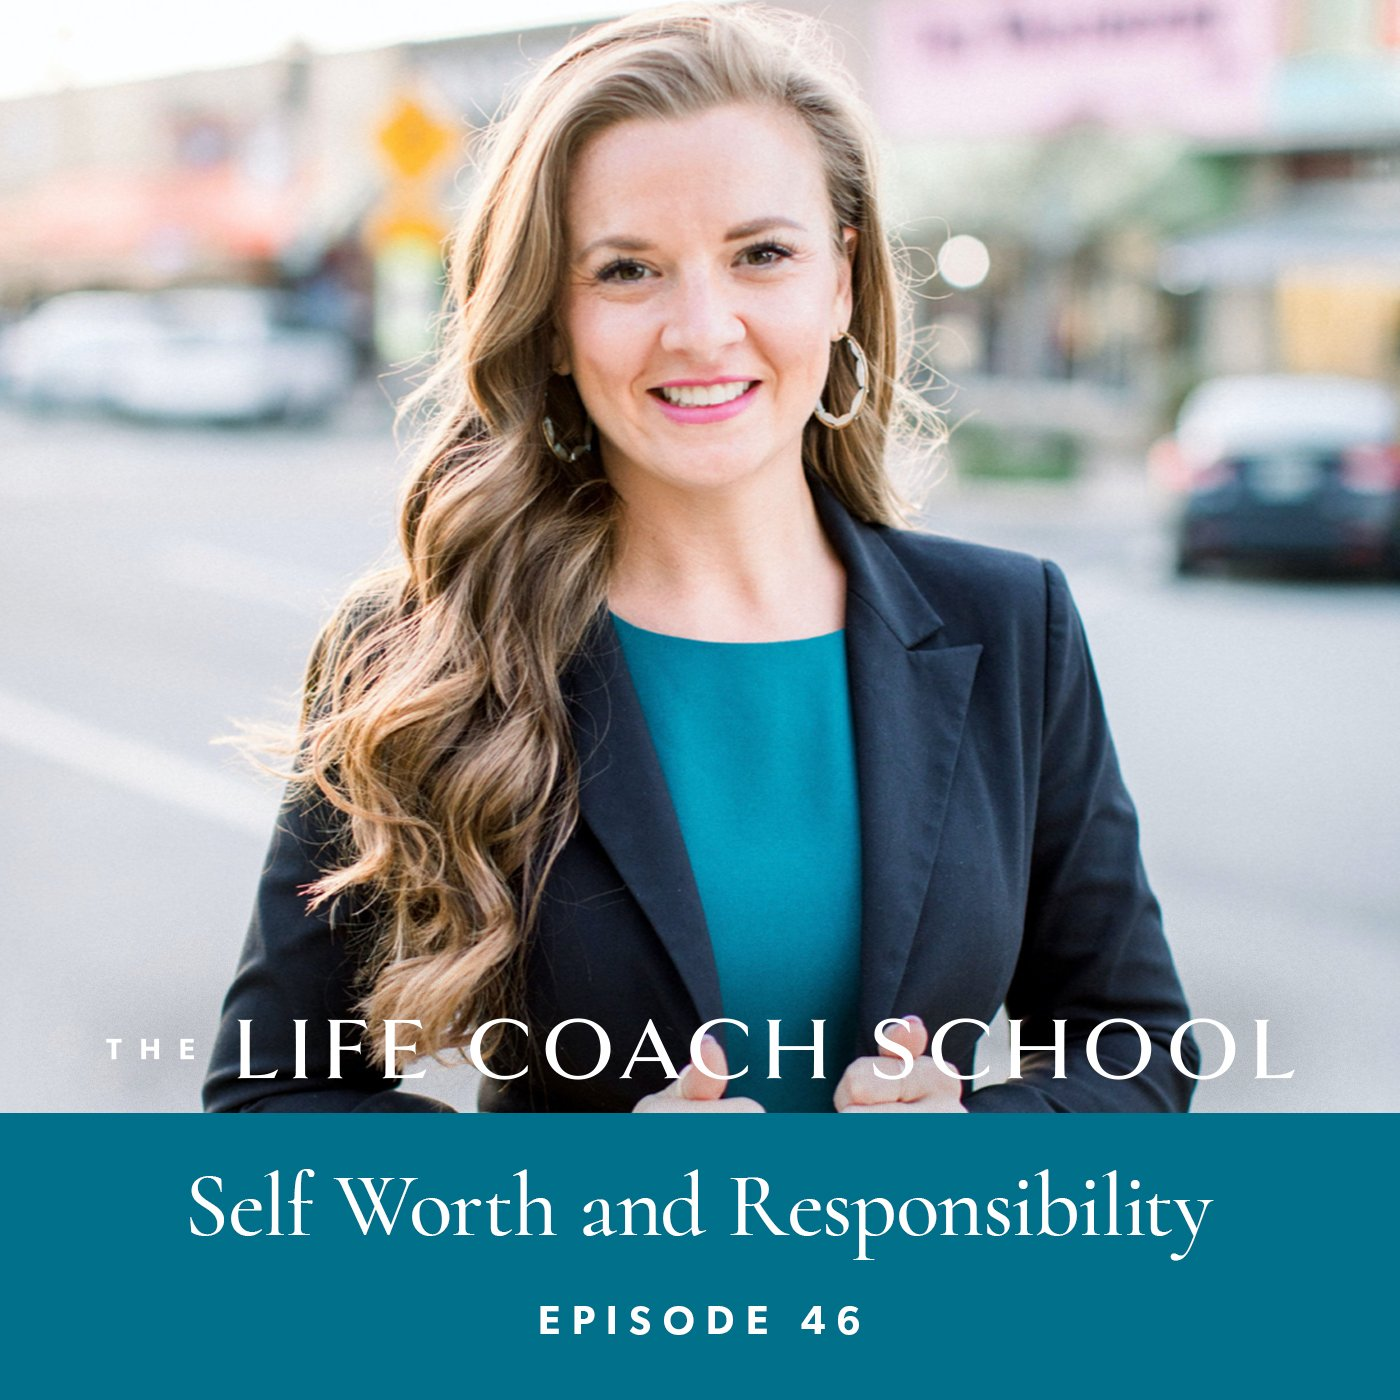 The Life Coach School Podcast with Brooke Castillo | Episode 46 | Self Worth and Responsibility